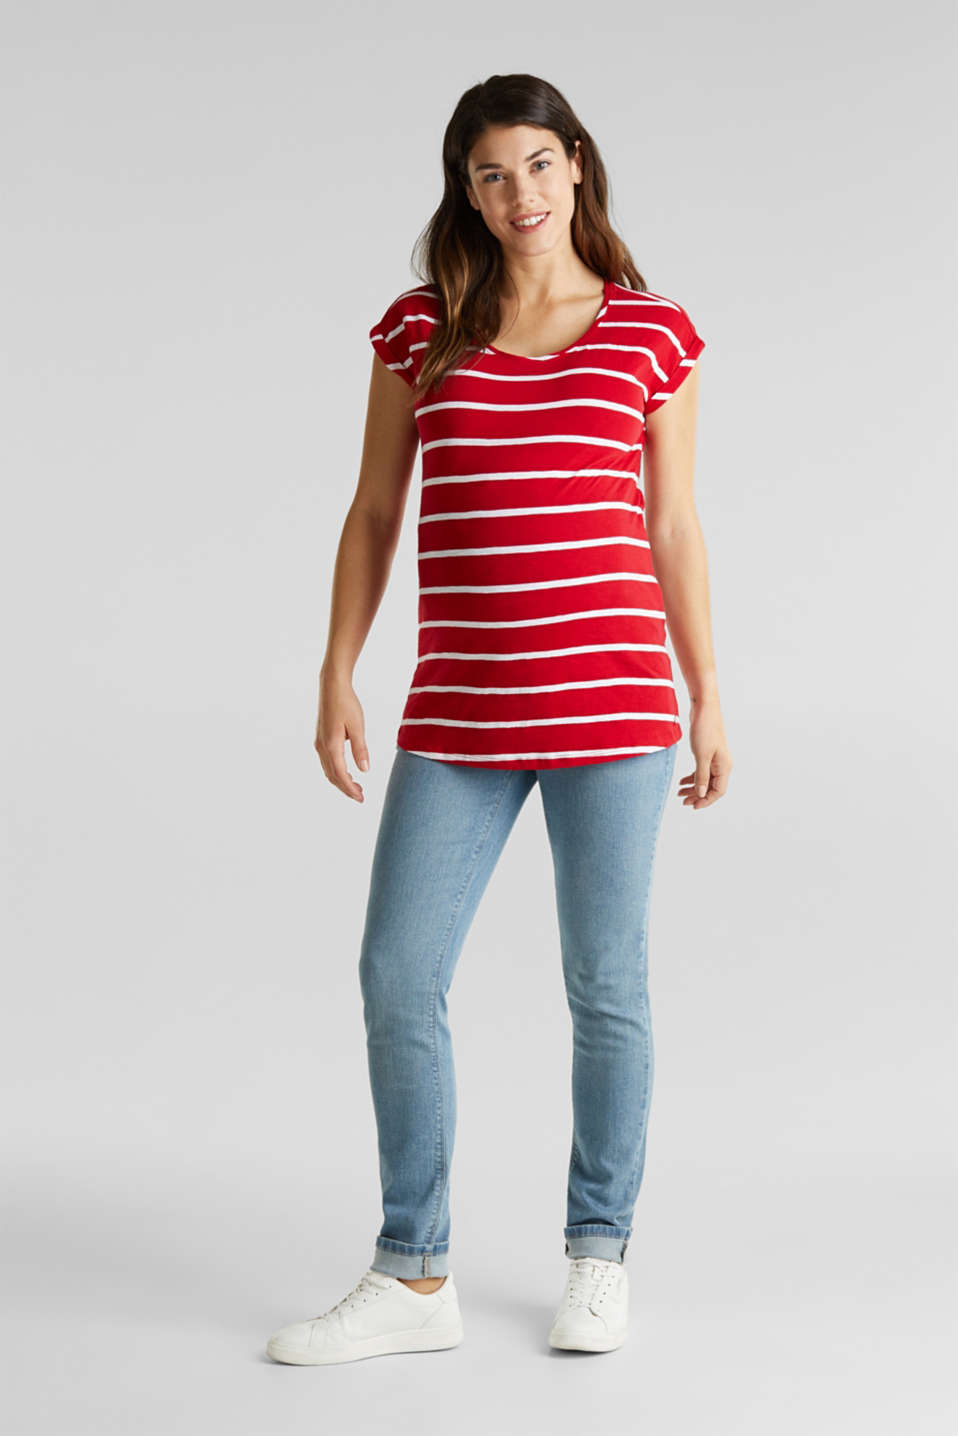 T-shirt with stripes, 100% cotton, LCRED, detail image number 1